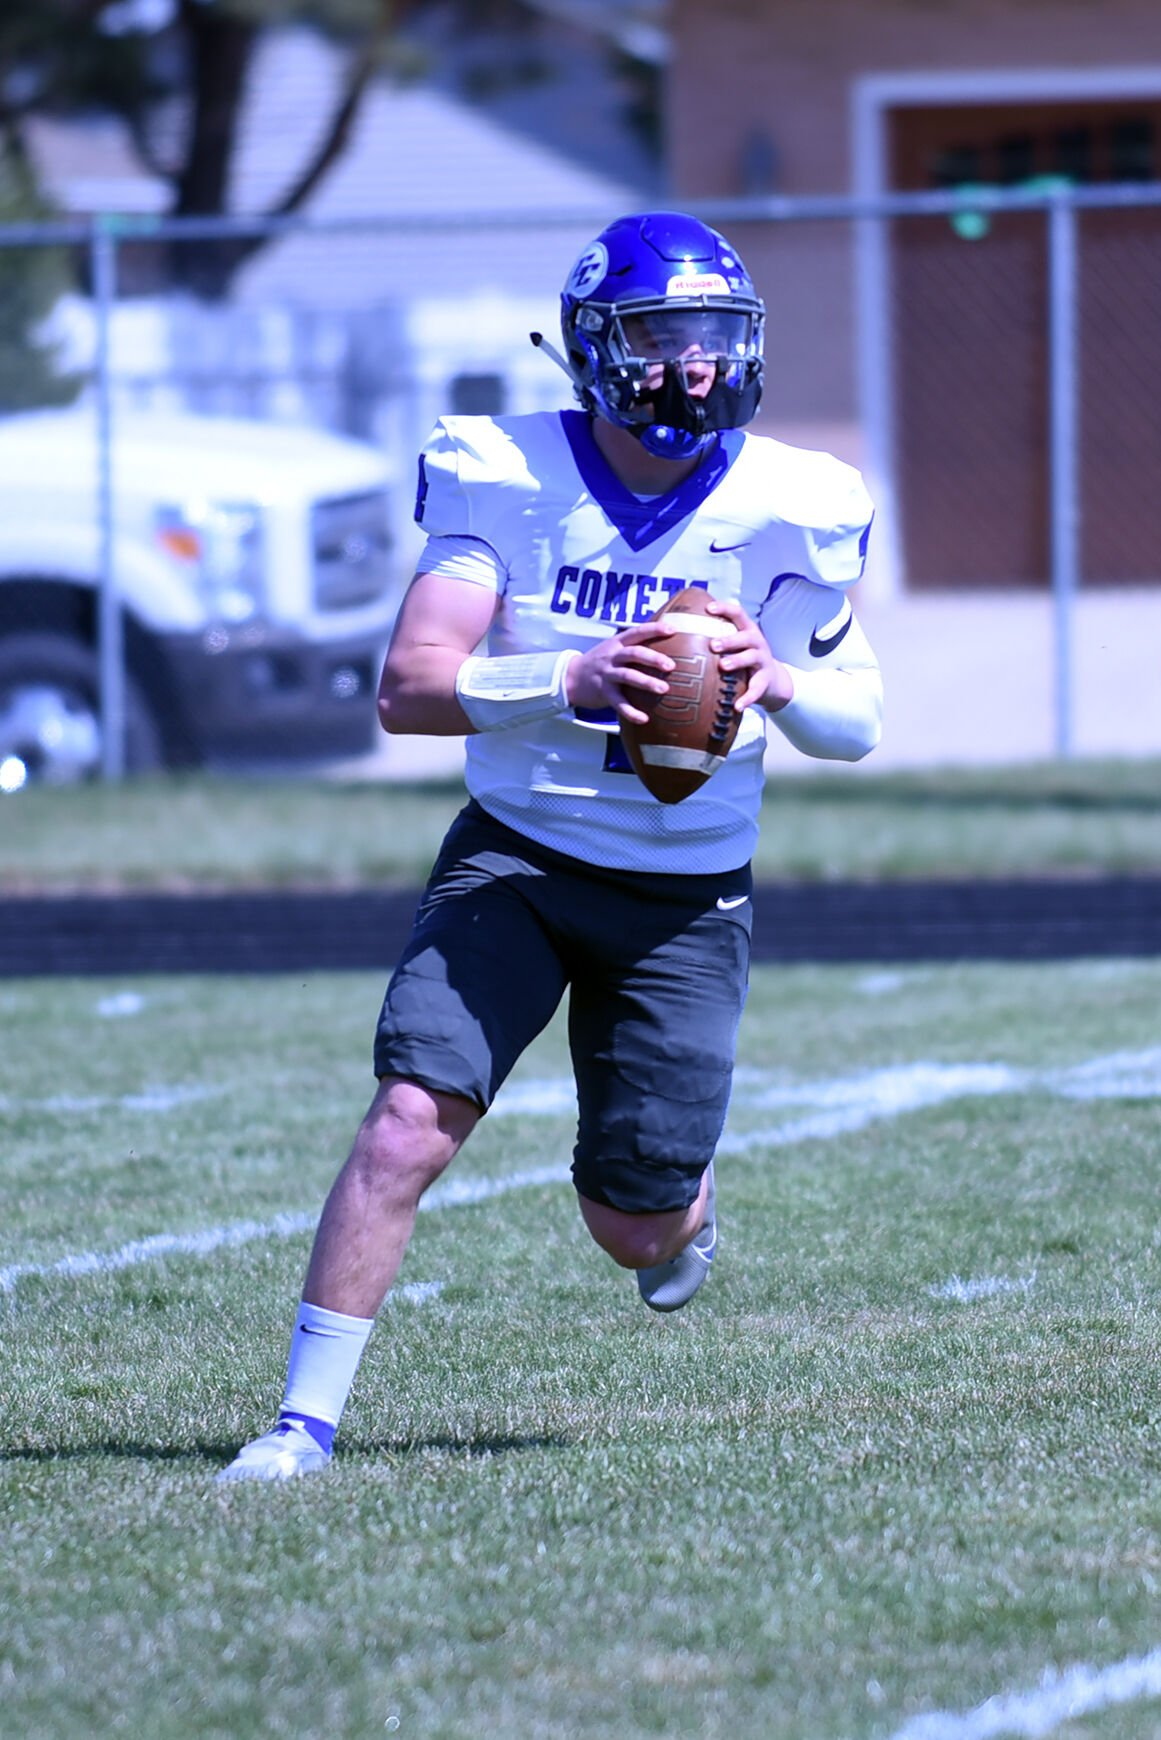 FOOTBALL: Dwight hosts Central